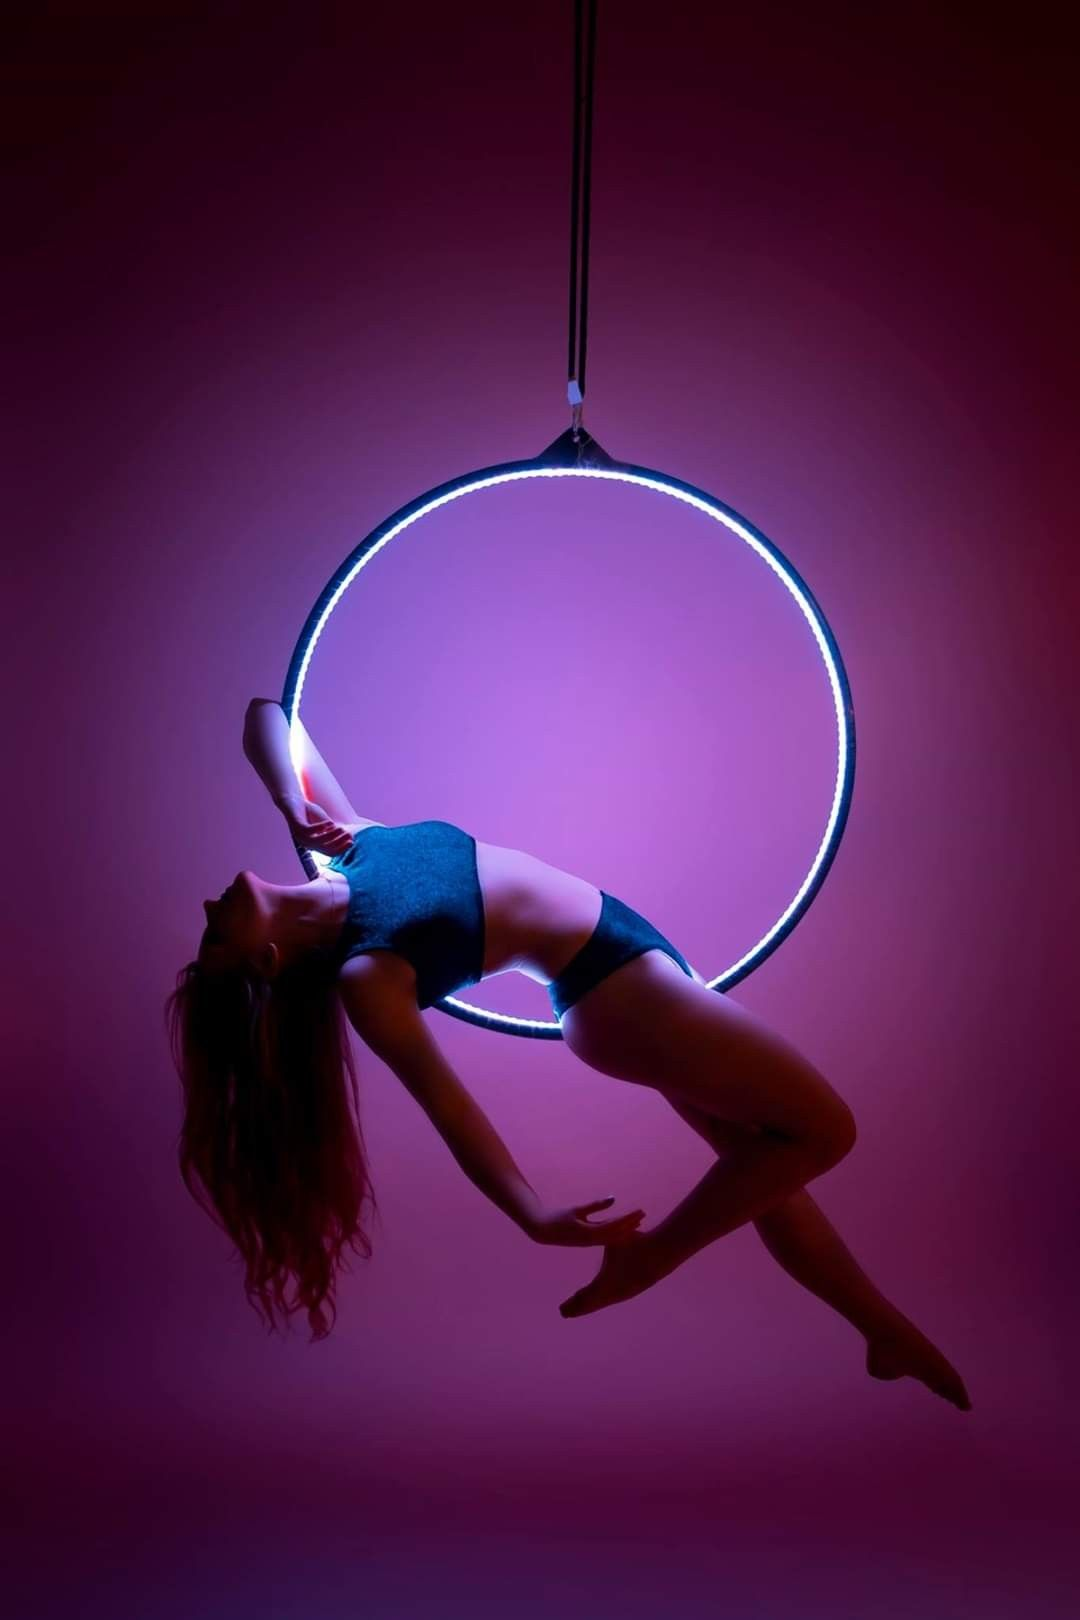 Pin By Francini Lobo On Pole Dance Aerial In 2020 Aerial Hoop Aerial Hoop Lyra Aerial Silks